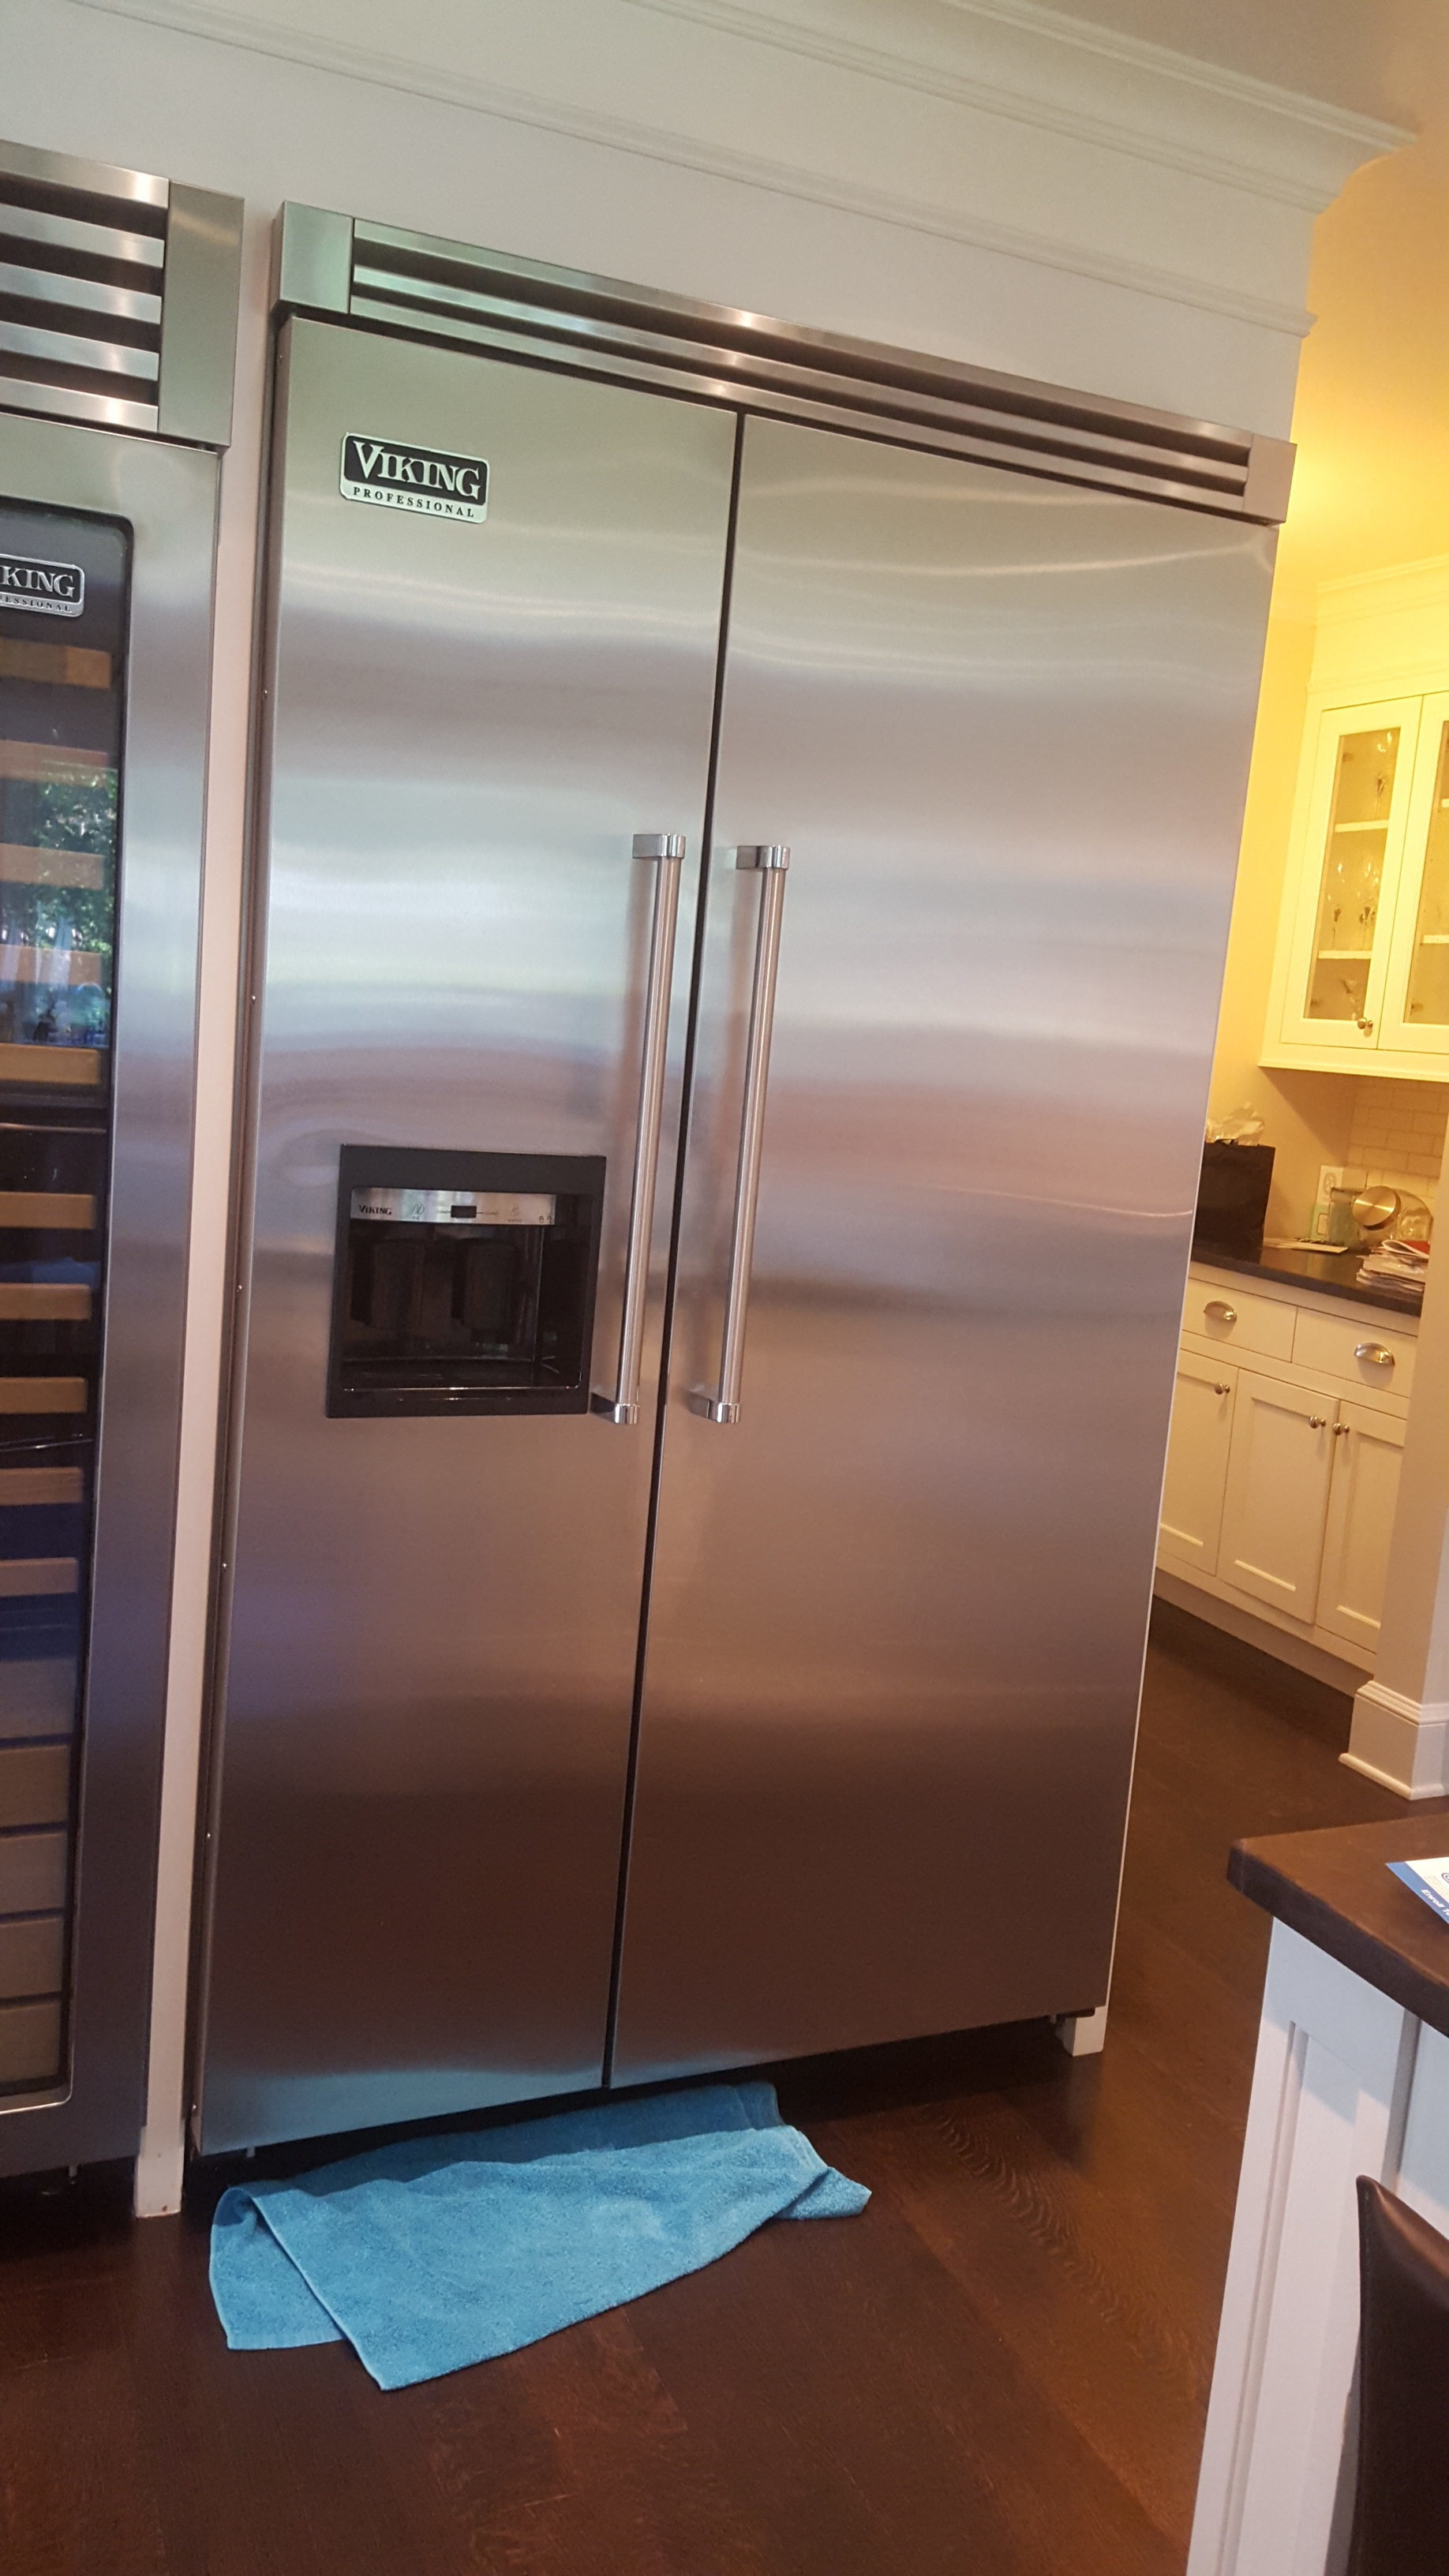 Top 196 Complaints And Reviews About Viking Refrigerators